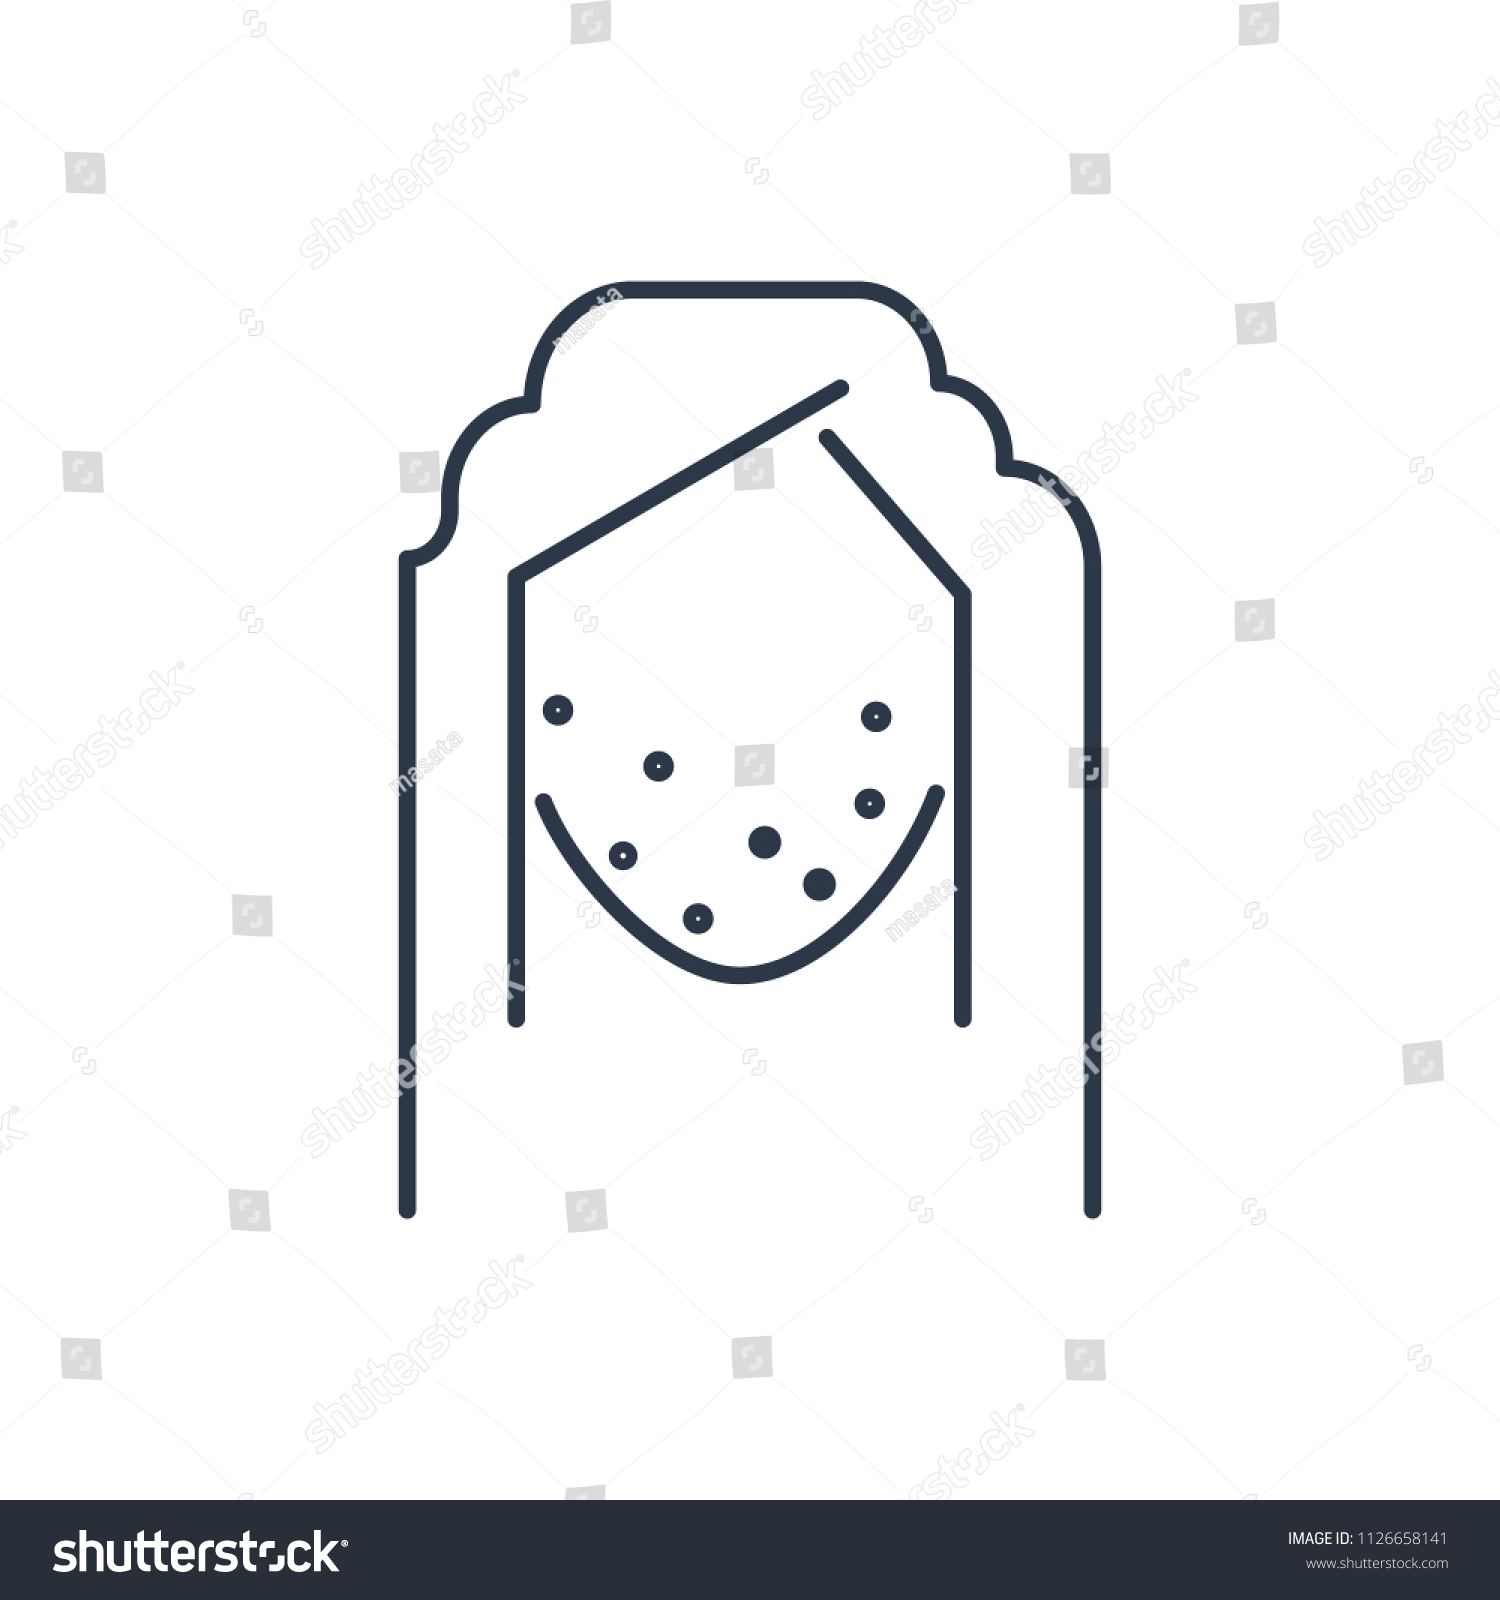 hight resolution of acne face icon isolated pimple and acne face icon line style premium quality vector